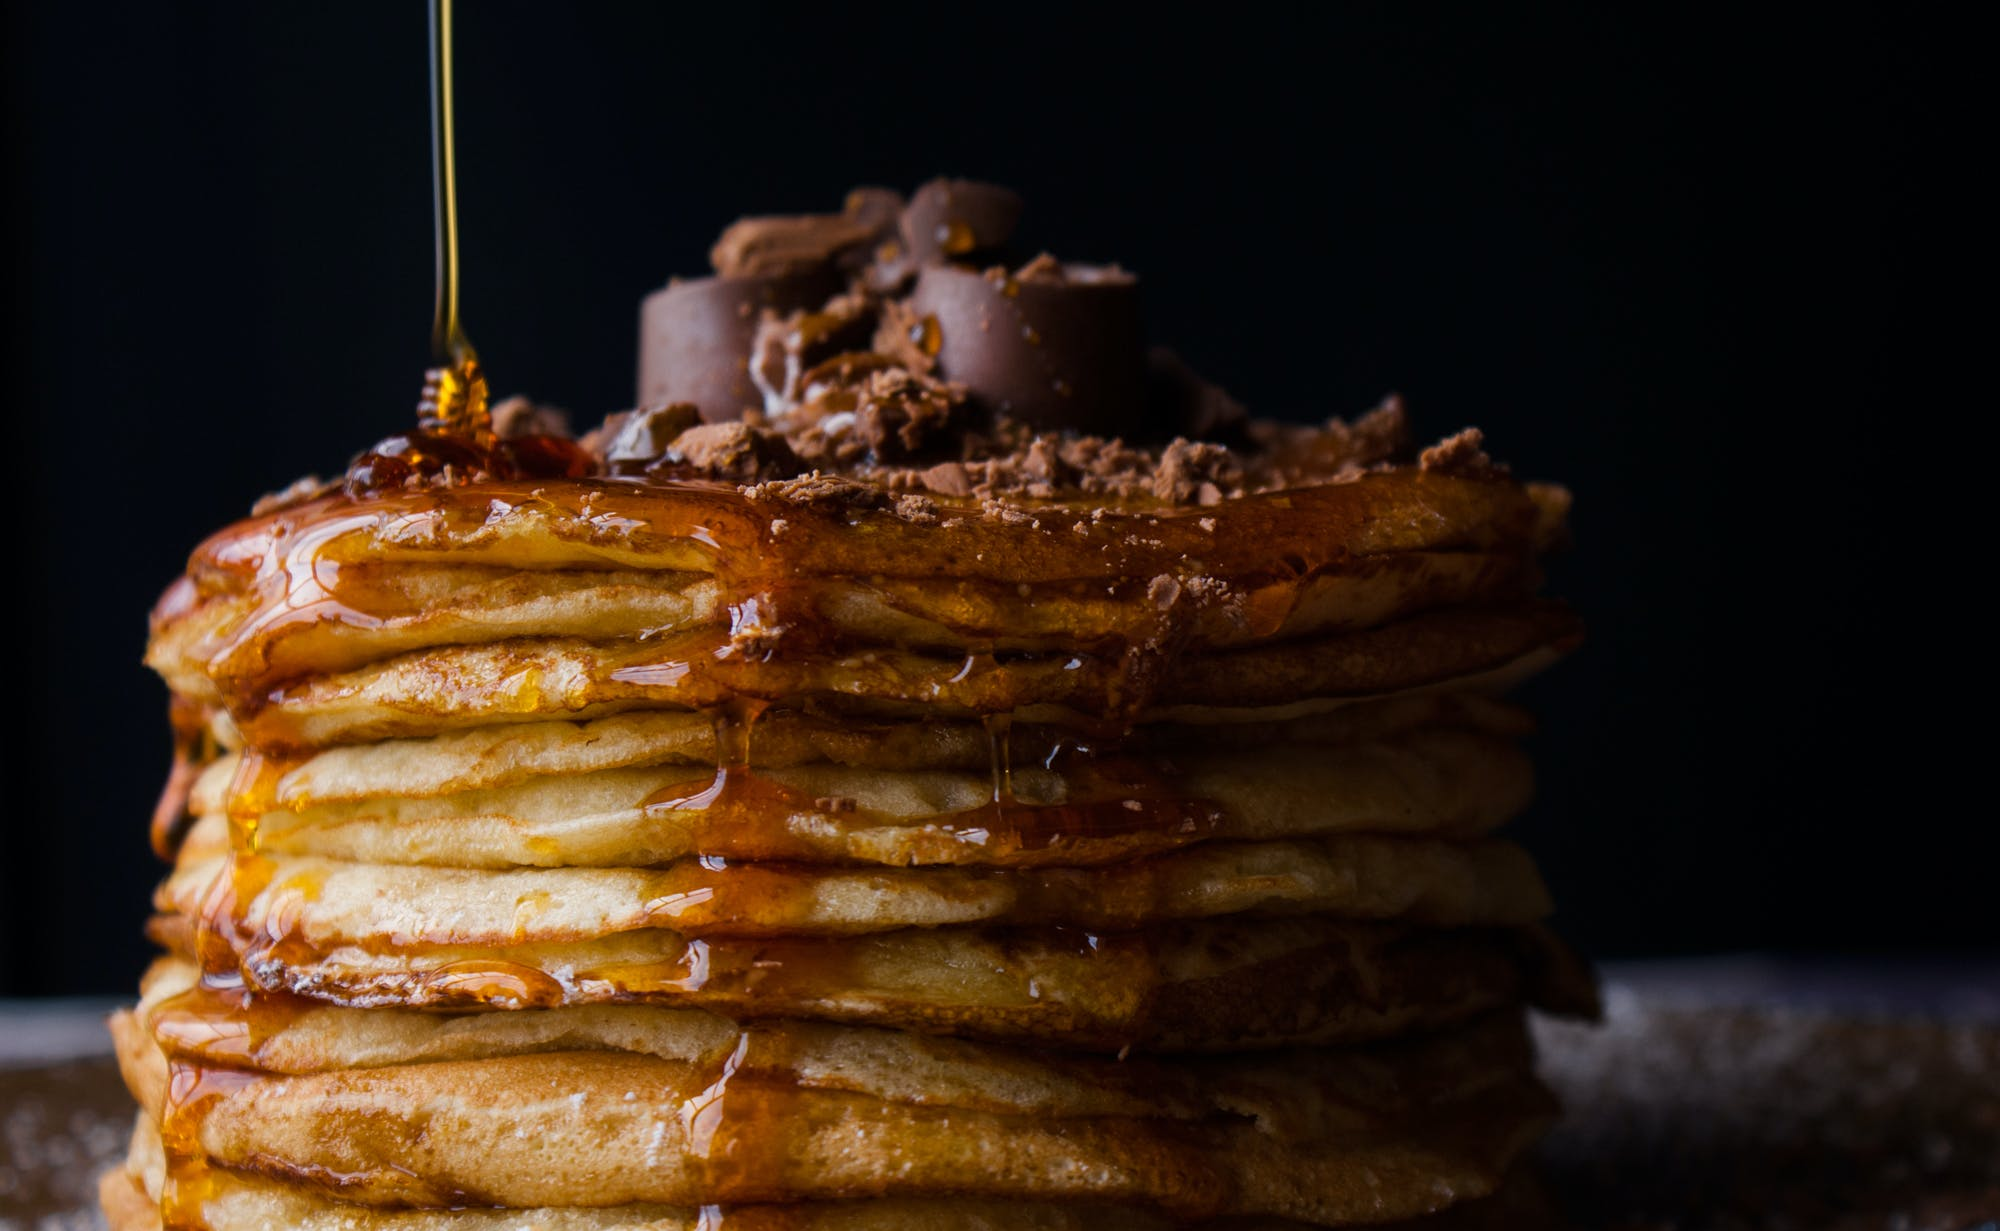 Free stock photo of food, chocolate, dessert, pancakes